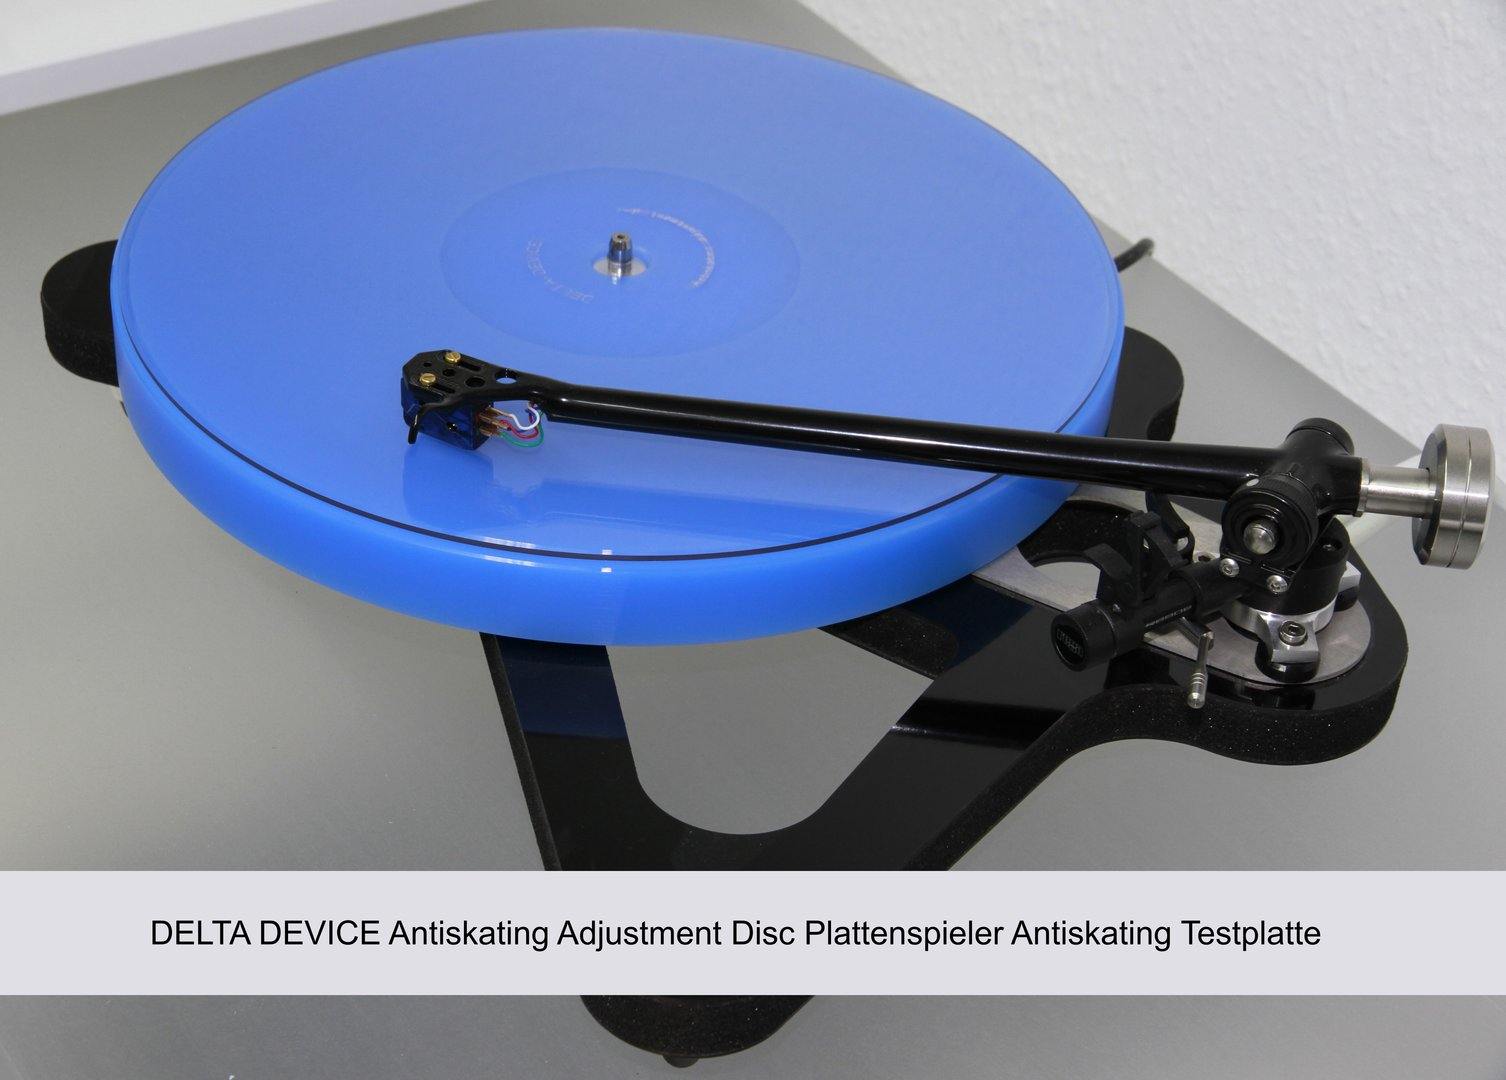 DELTA DEVICE Antiskating Adjustment Disc